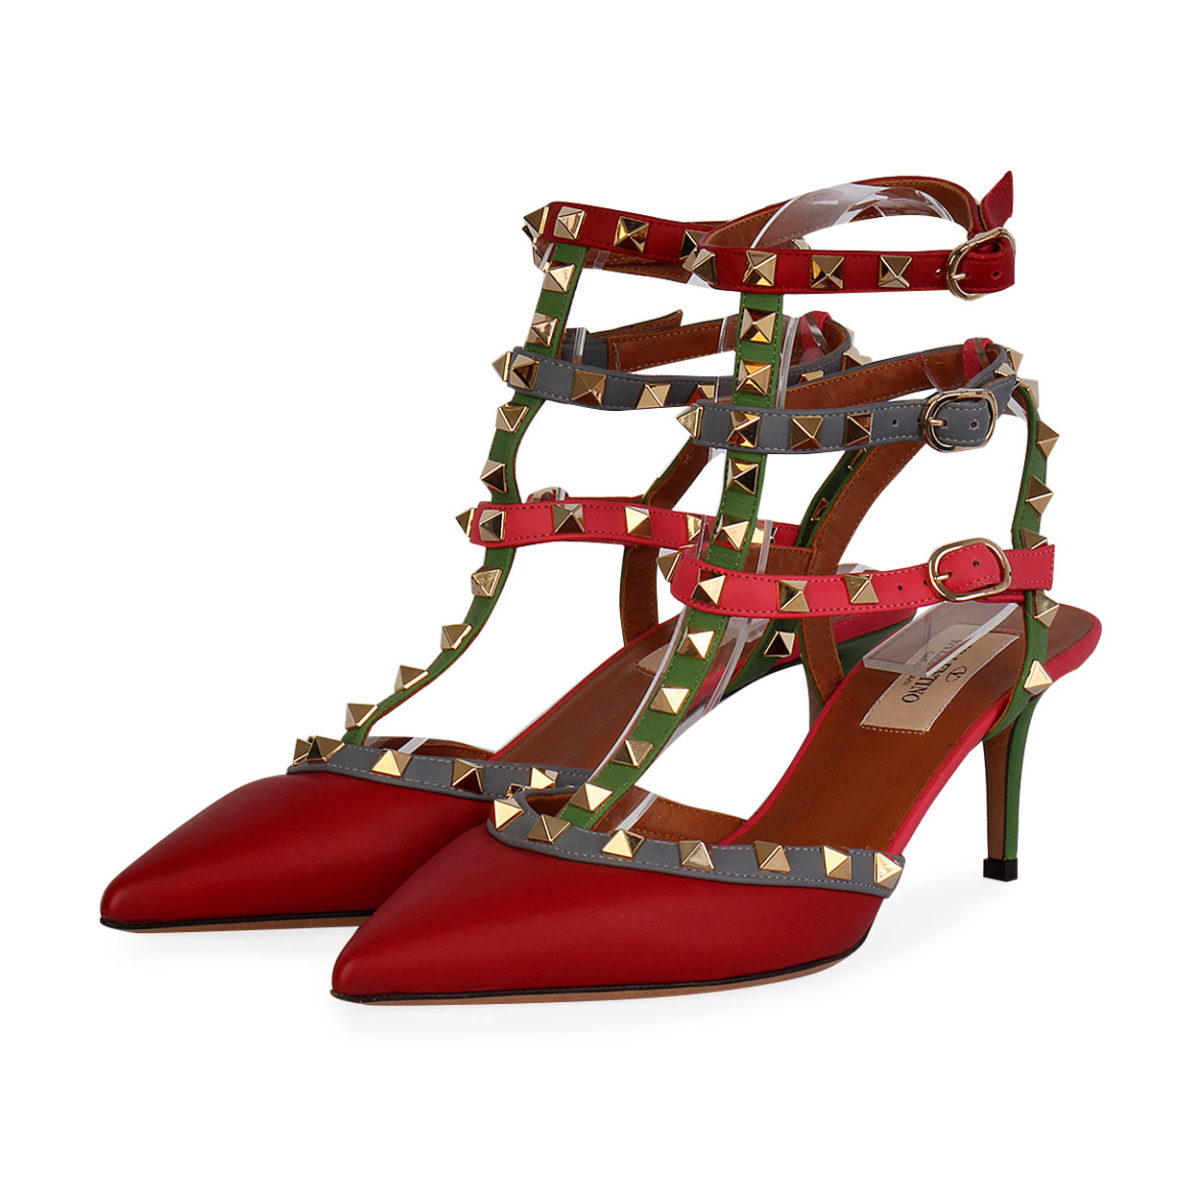 7fdc40e44e VALENTINO Pebbled Leather Rockstud T-Strap Kitten Heel Pumps Red - S ...